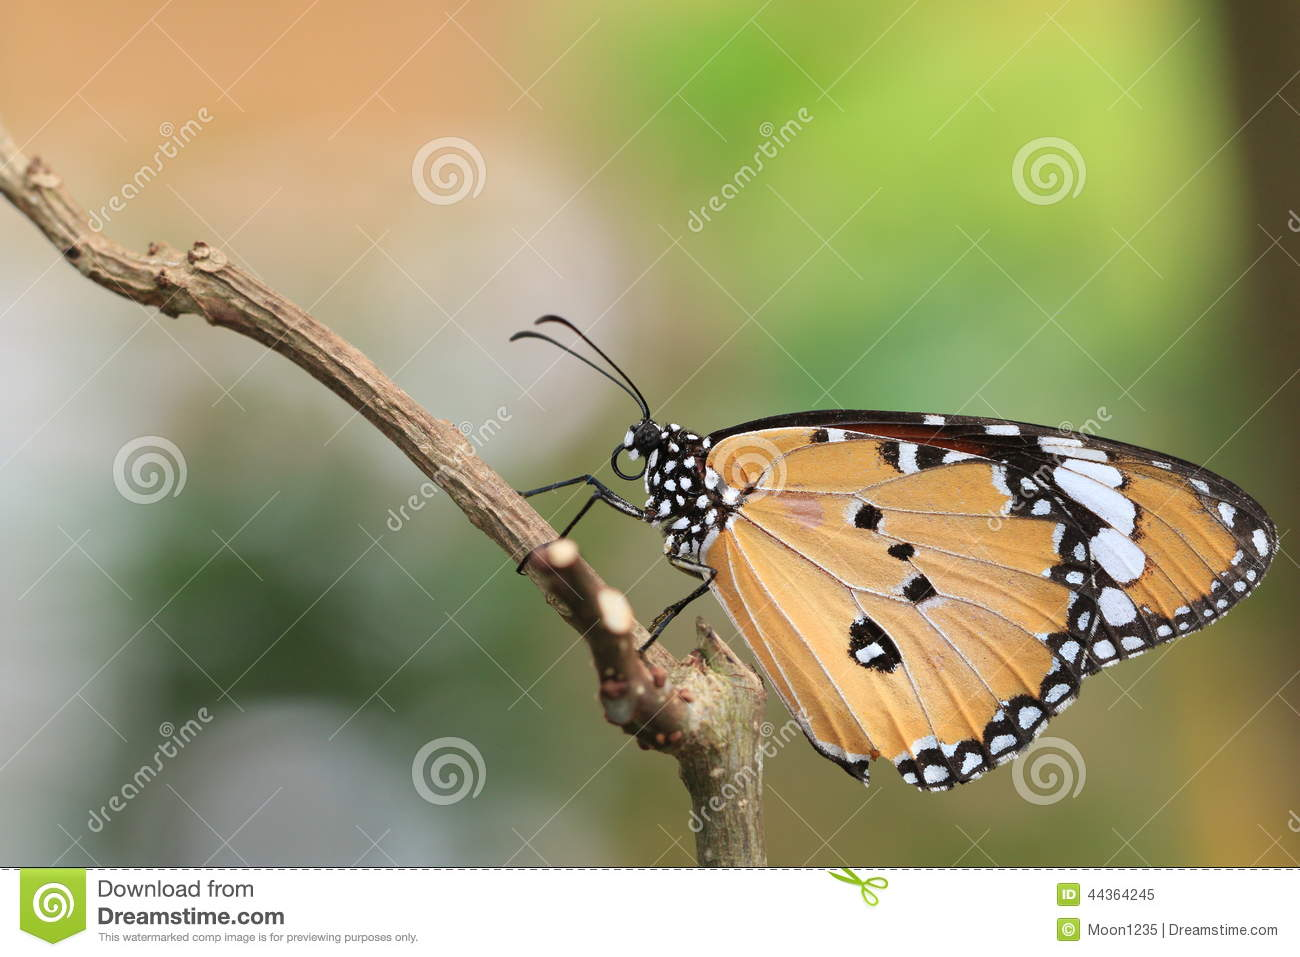 TIger Butterfly comune